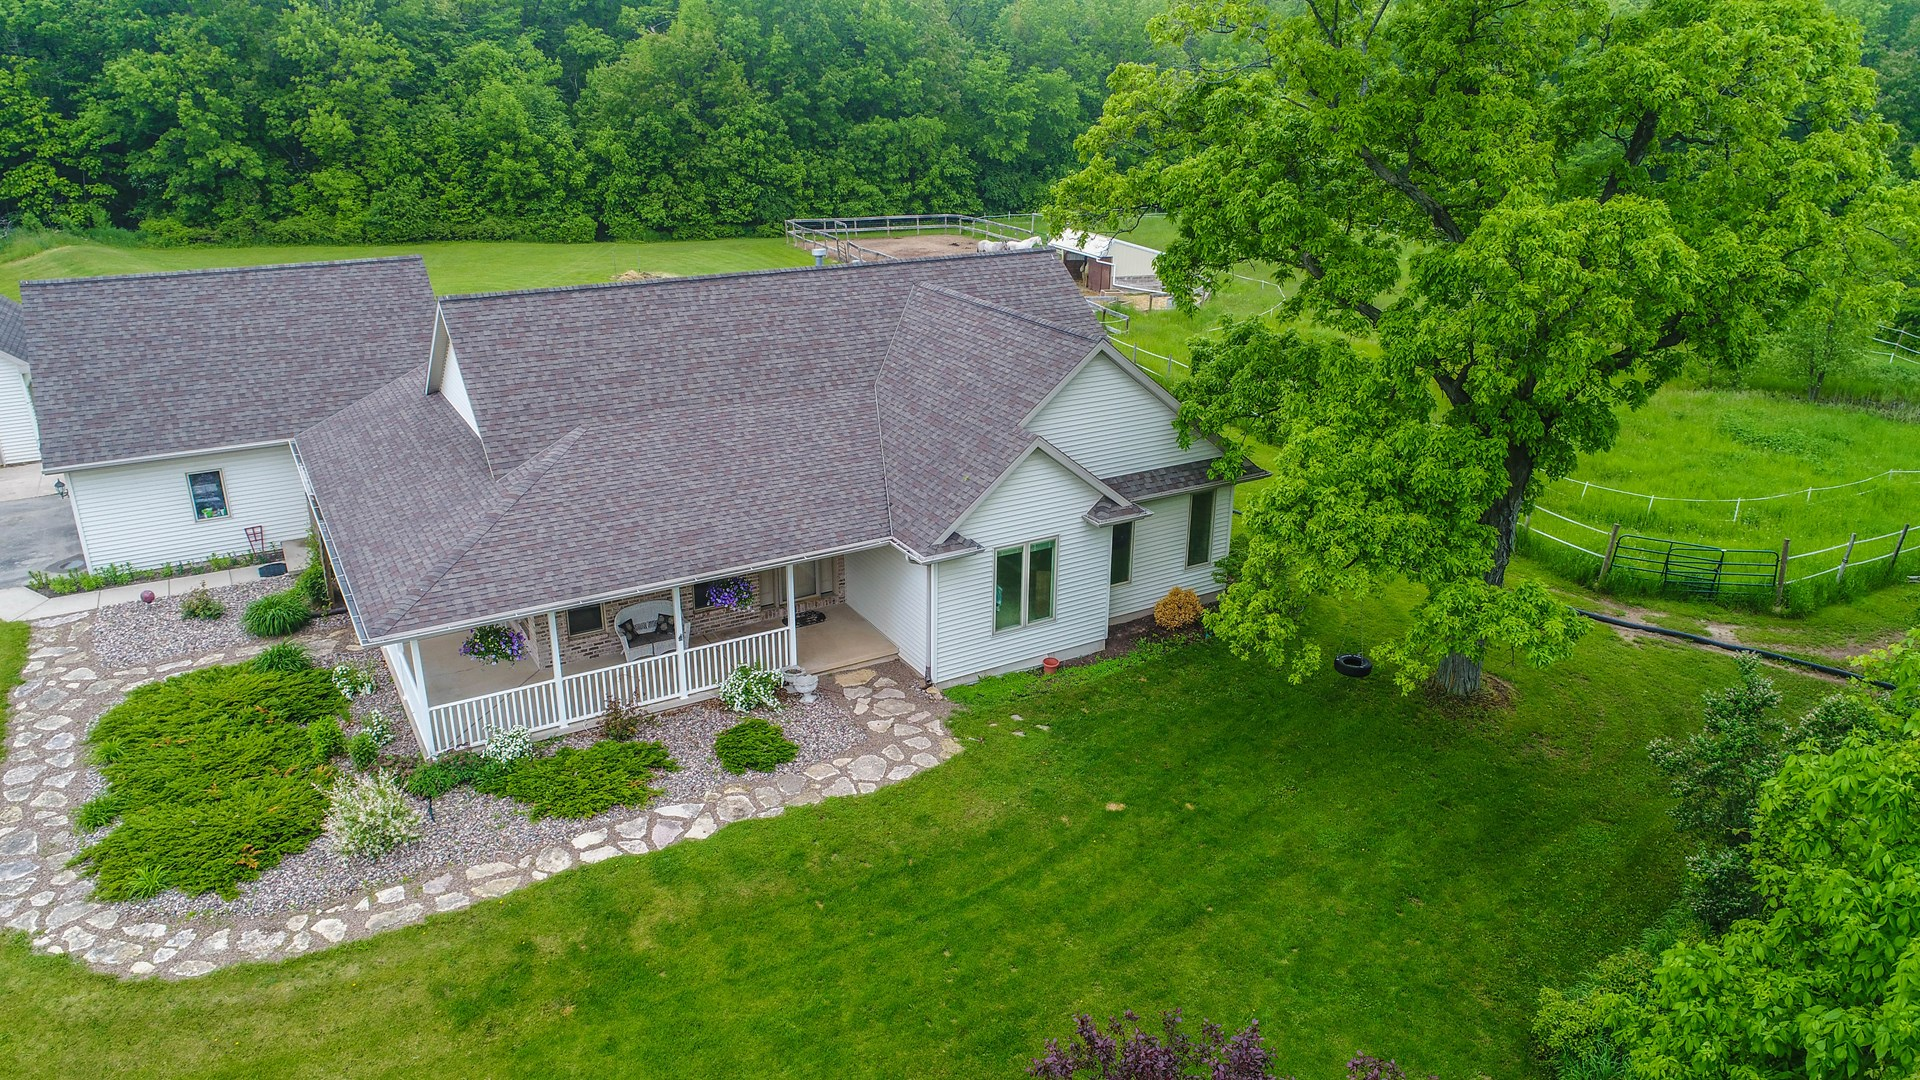 Horse Property for Sale in DePere, WI